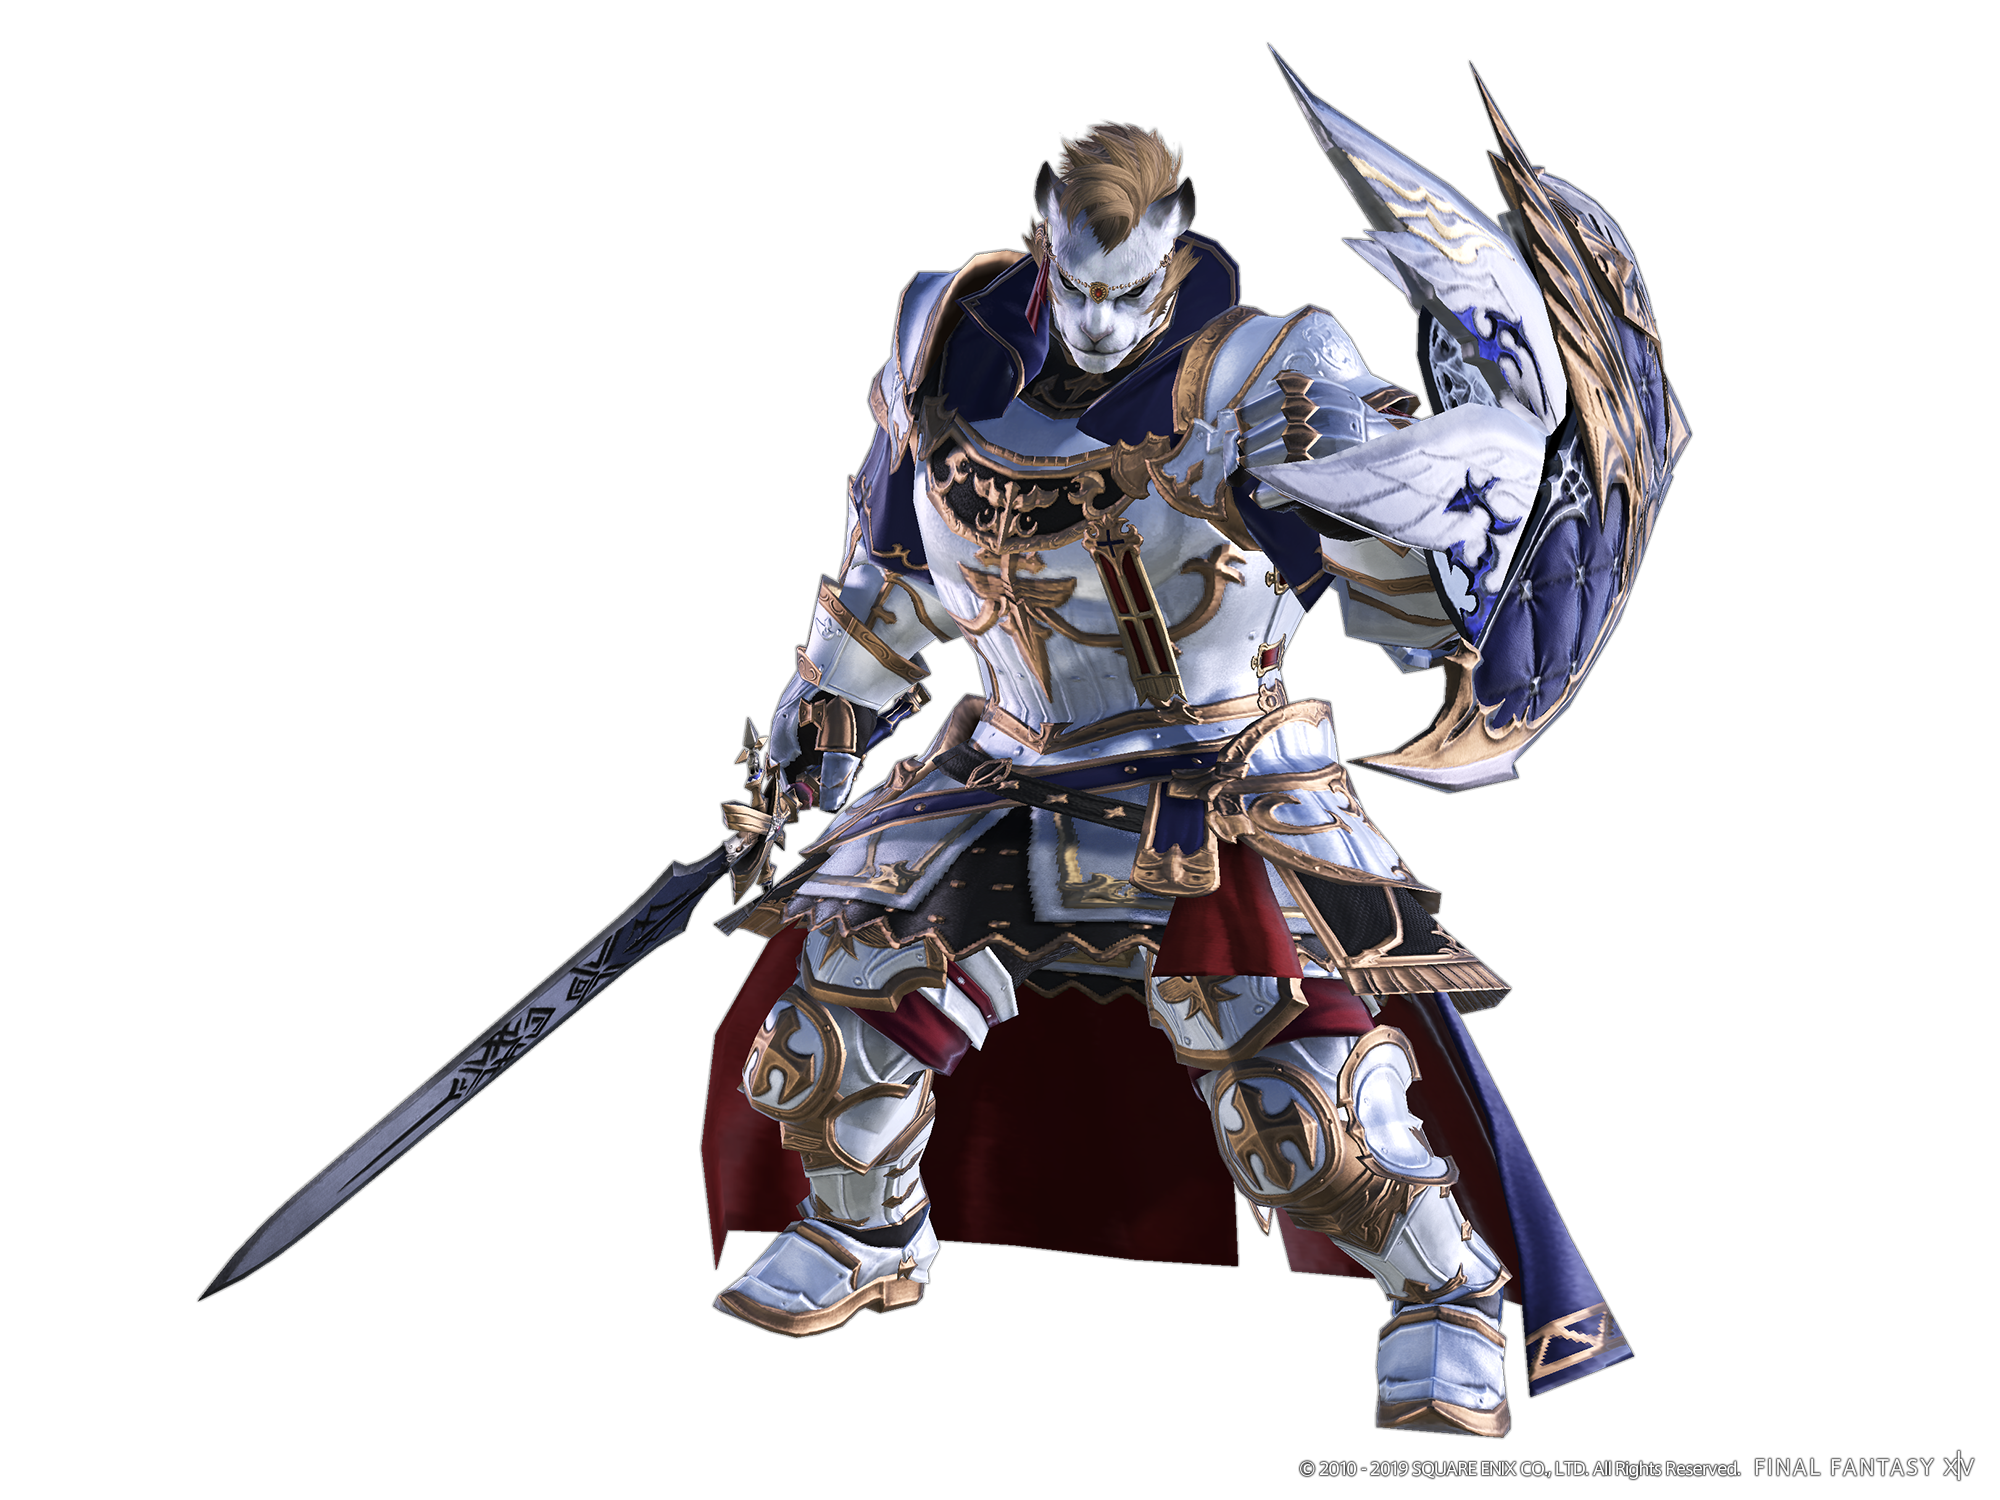 Final Fantasy XIV: Shadowbringers Hands-On with Paladin